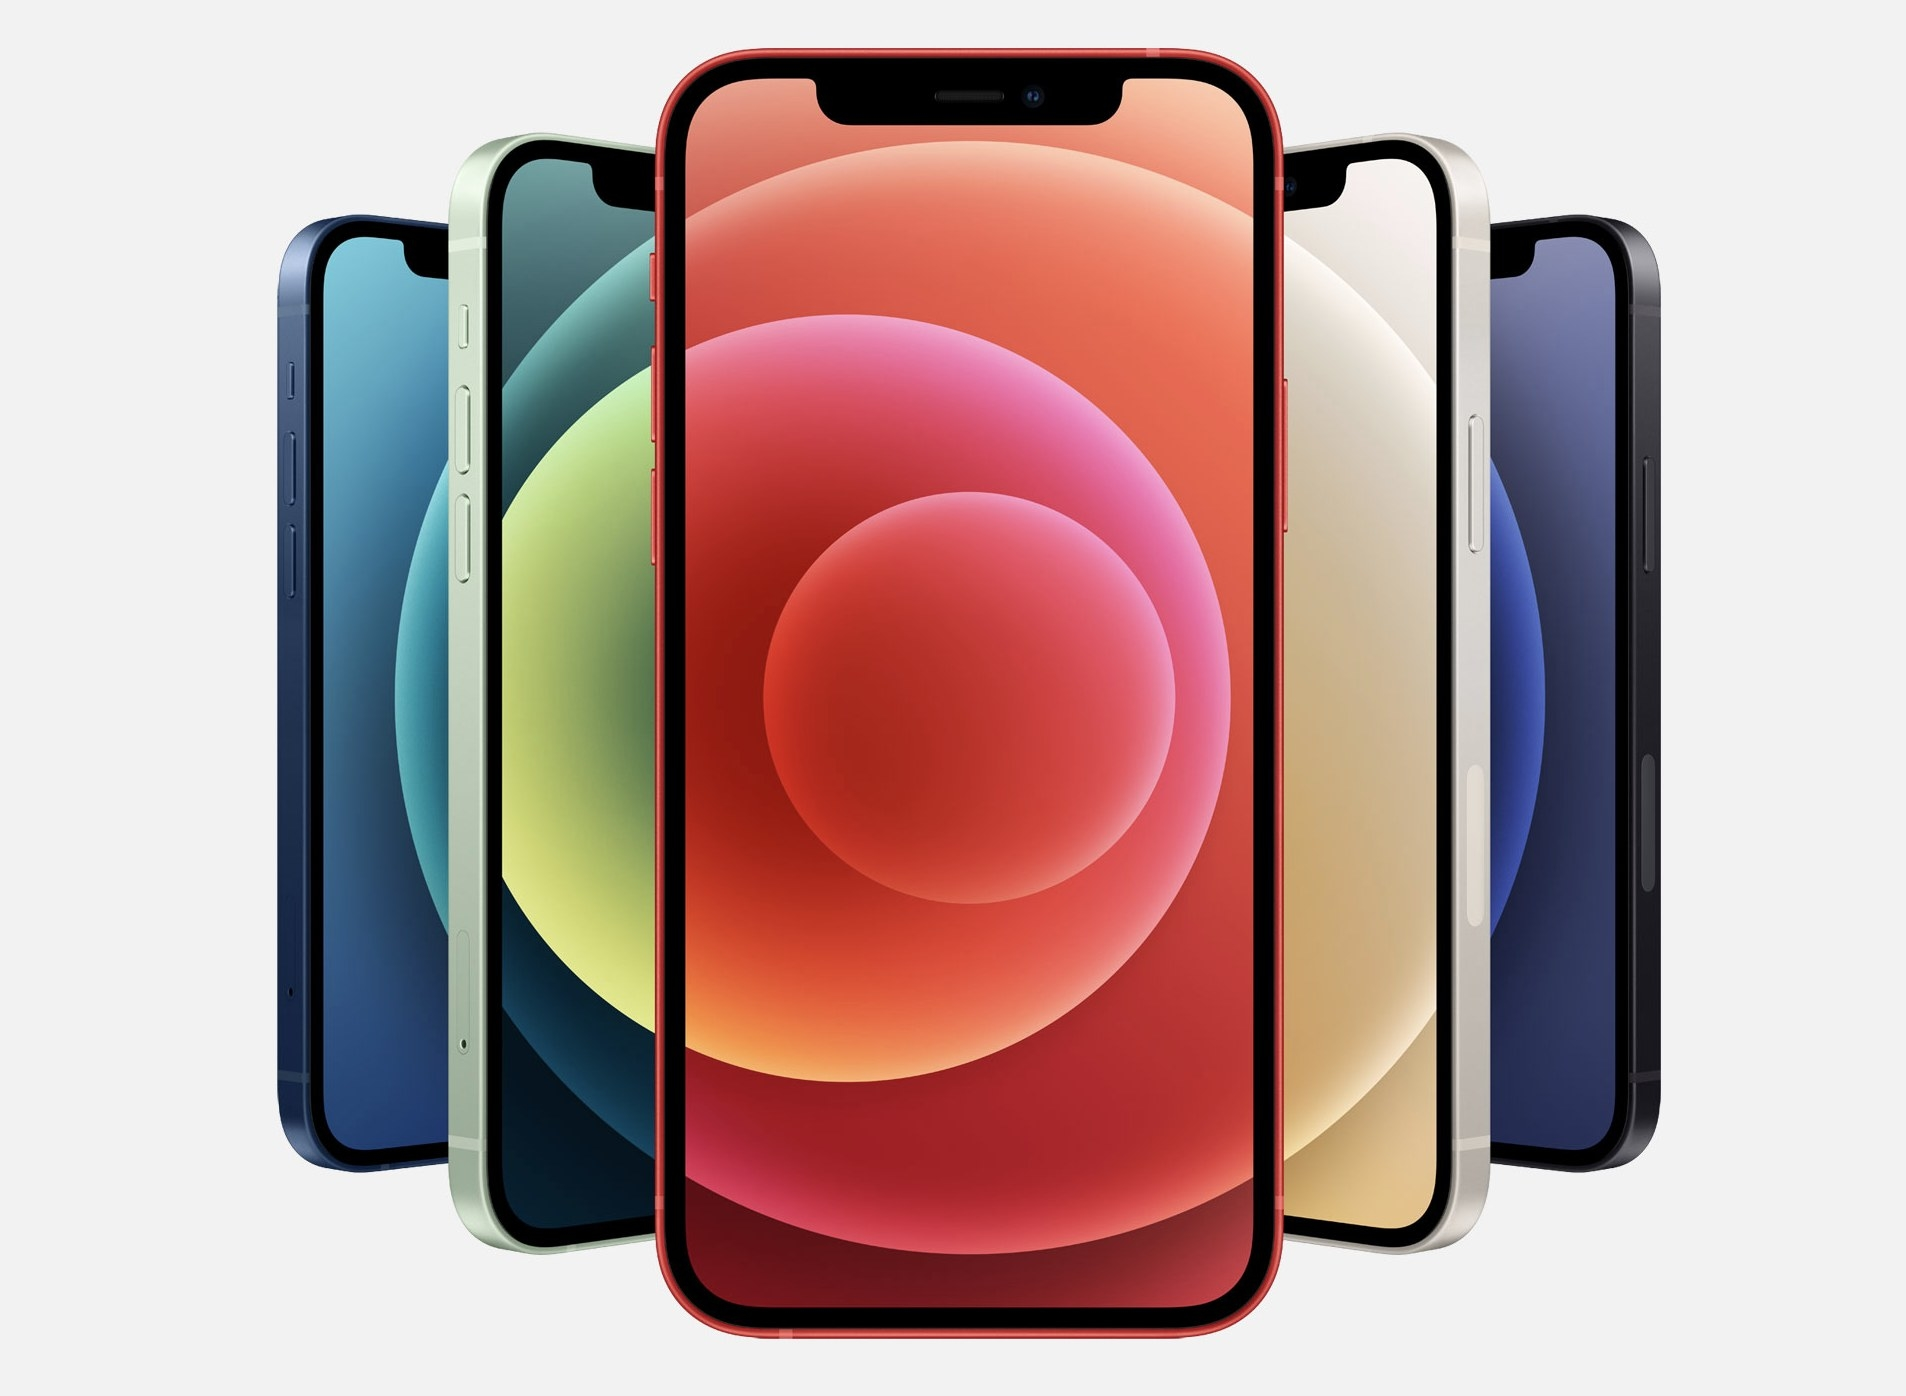 The iPhone 12 Pro in a variety of colors